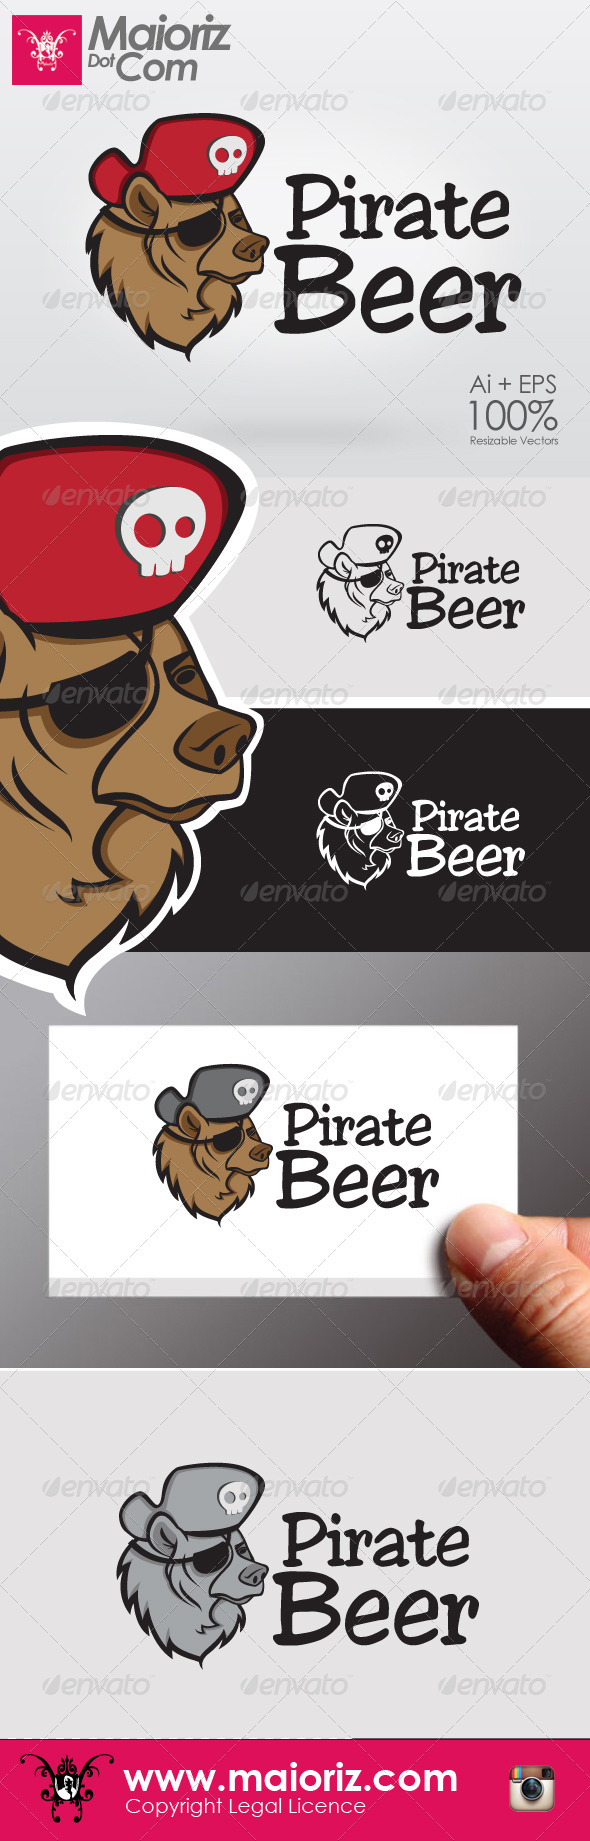 Pirate Beer Logo